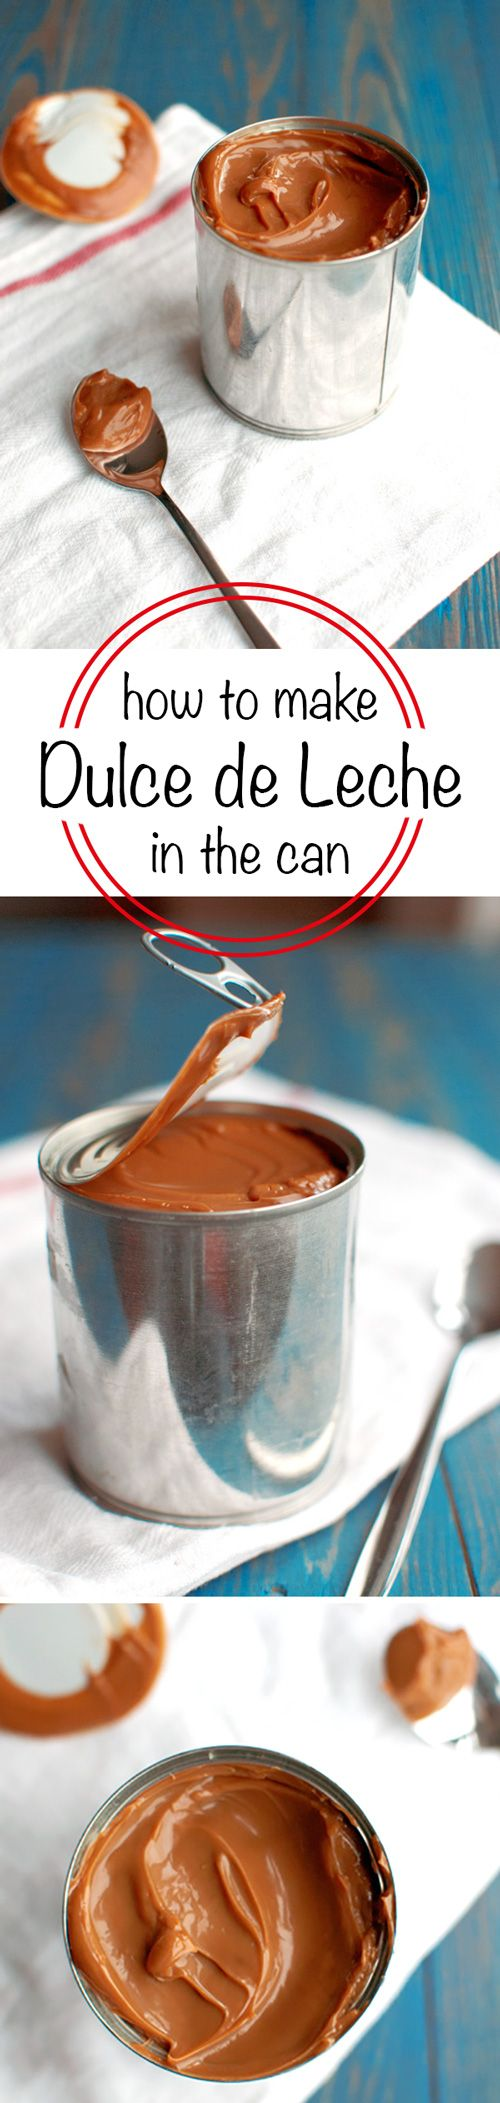 Best 25 argentina food ideas on pinterest easy argentina dulce de leche made in the can guatemalan dessertsargentina foodargentina recipescaramel forumfinder Choice Image